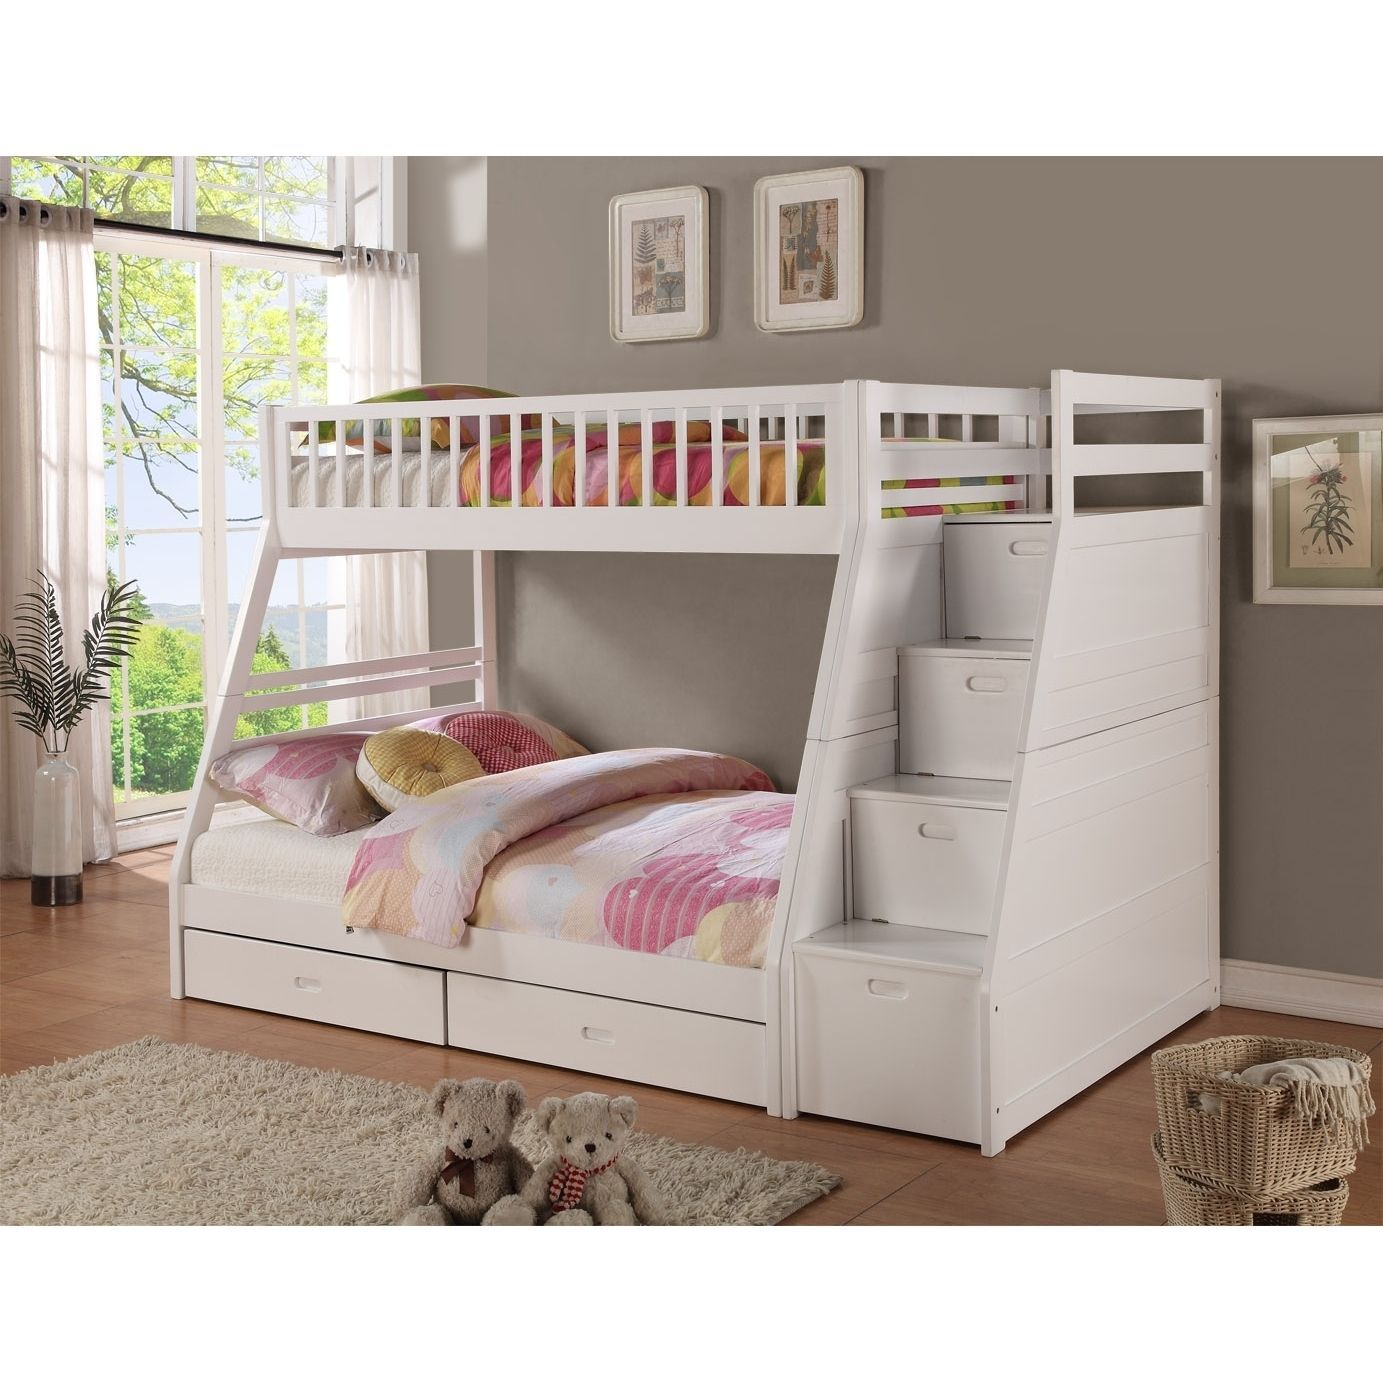 Best 1 000 This Twin Over Full Bunk Bed Set Has Ample Storage 400 x 300